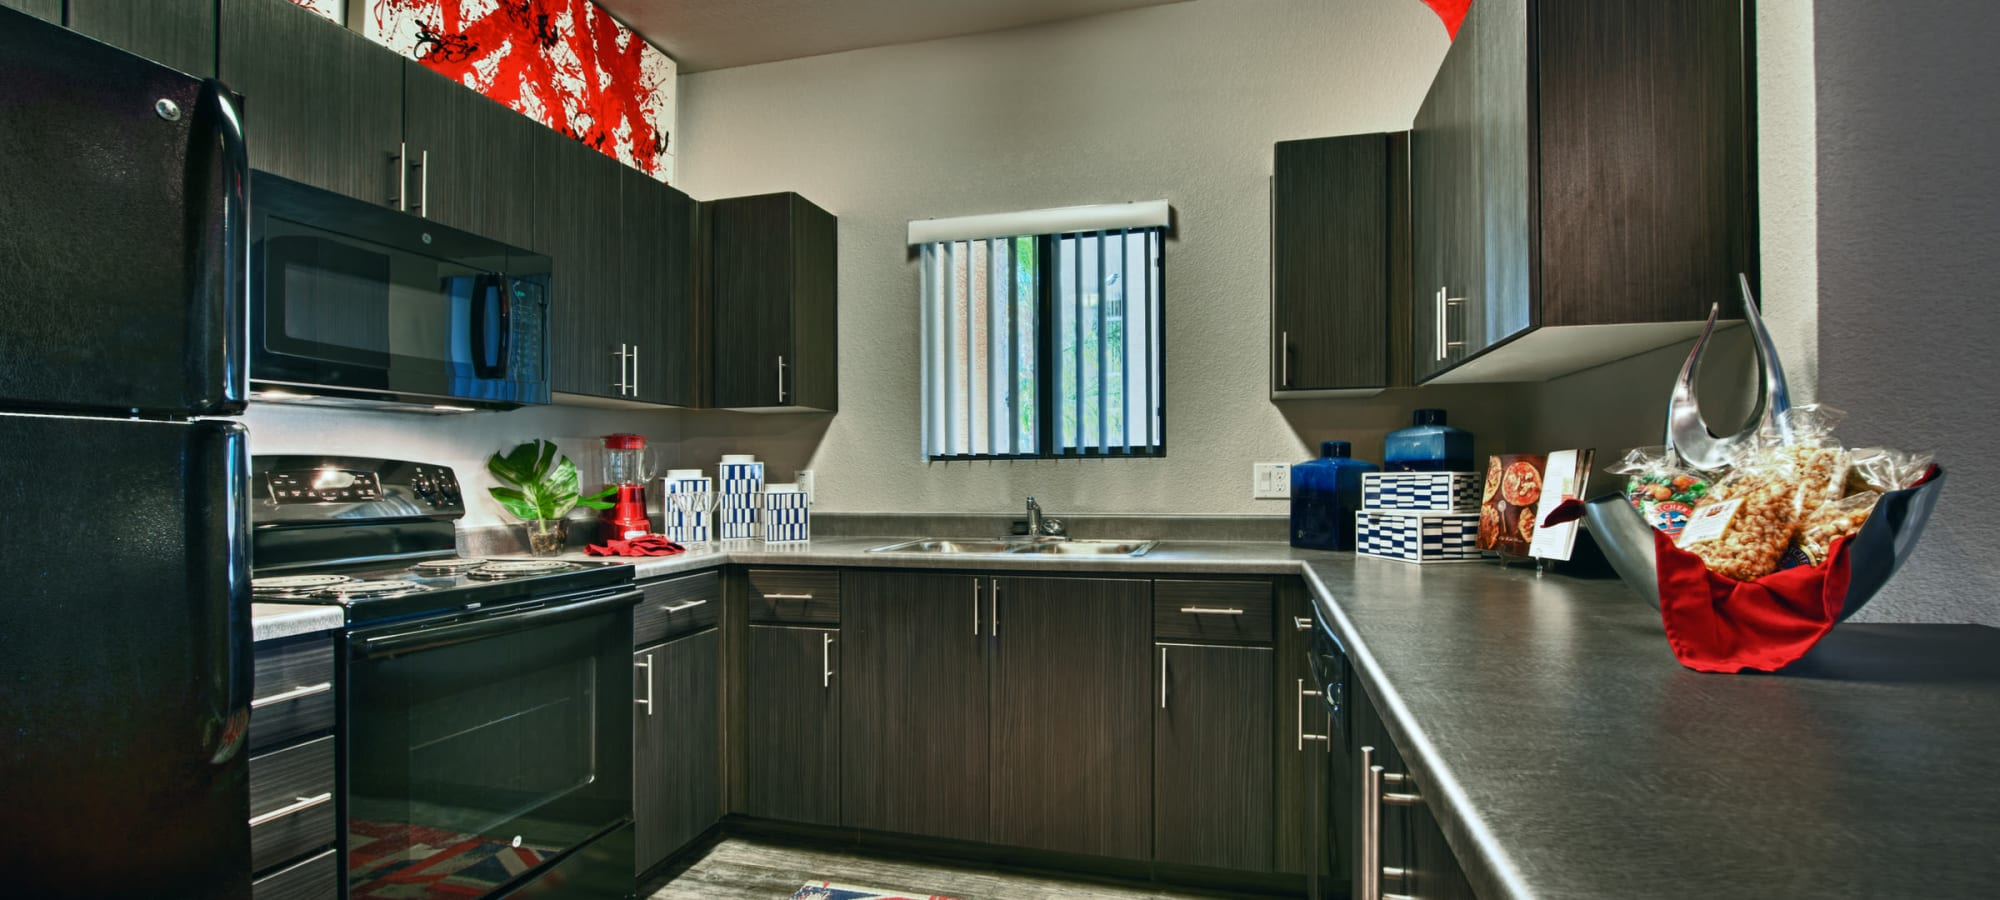 Kitchen with stainless-steel appliances at Avenue 25 Apartments in Phoenix, Arizona